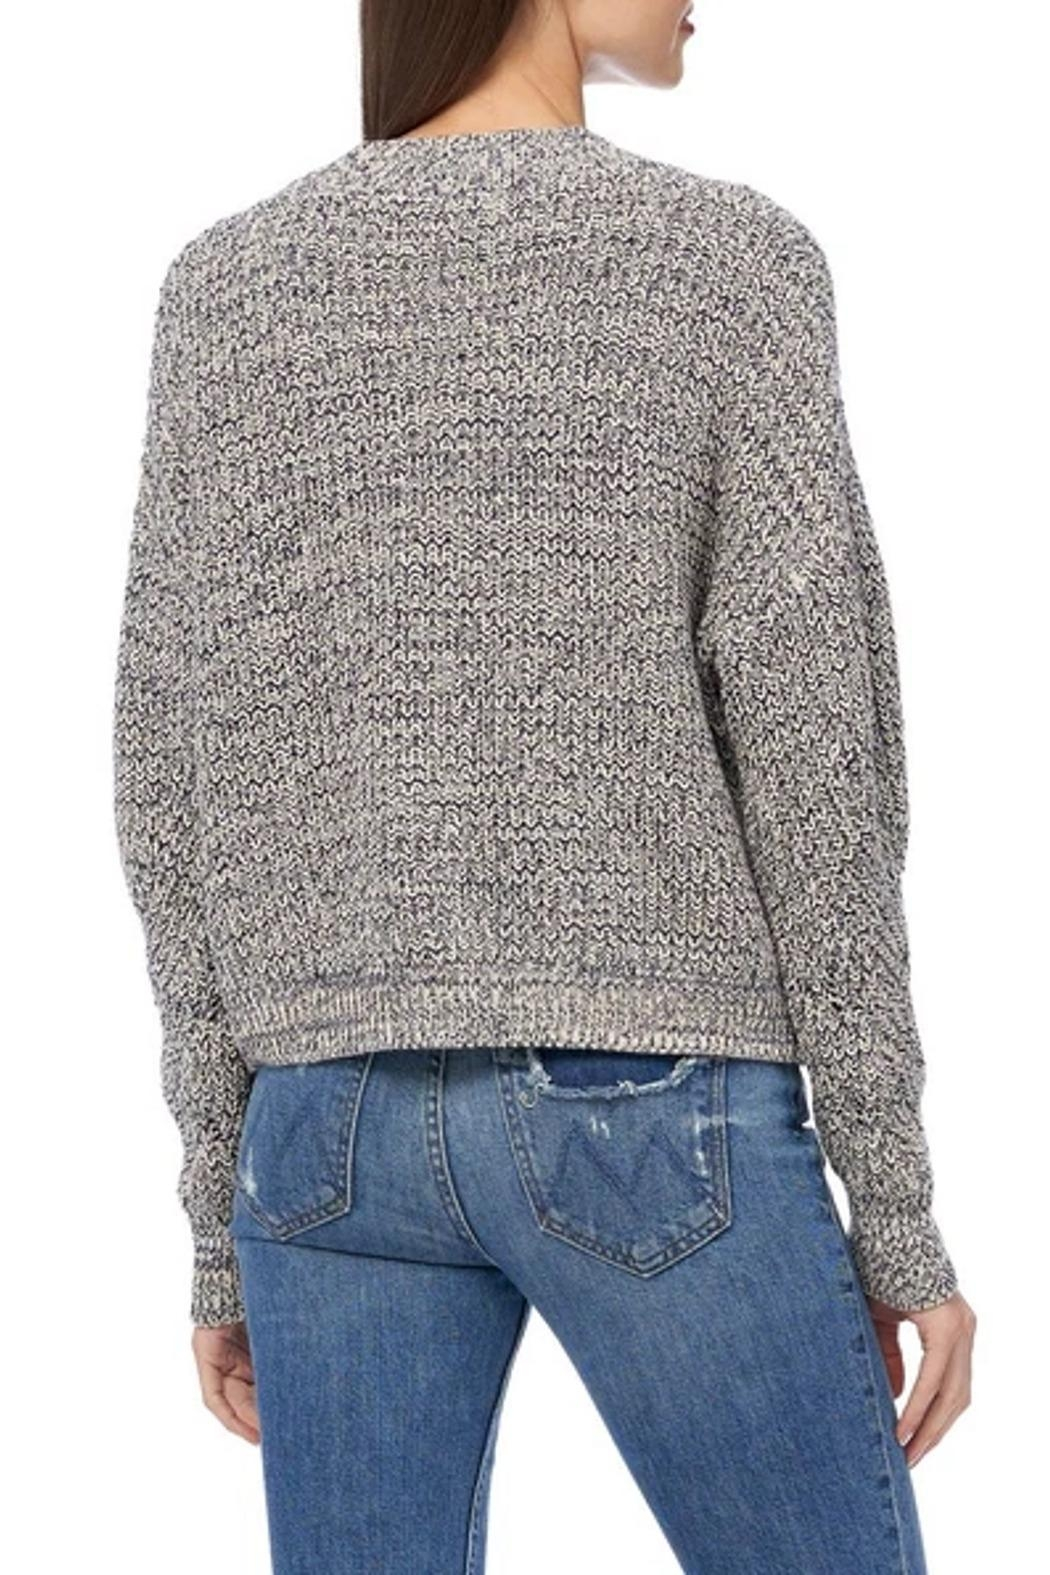 360 Cashmere Petunia Sweater - Side Cropped Image